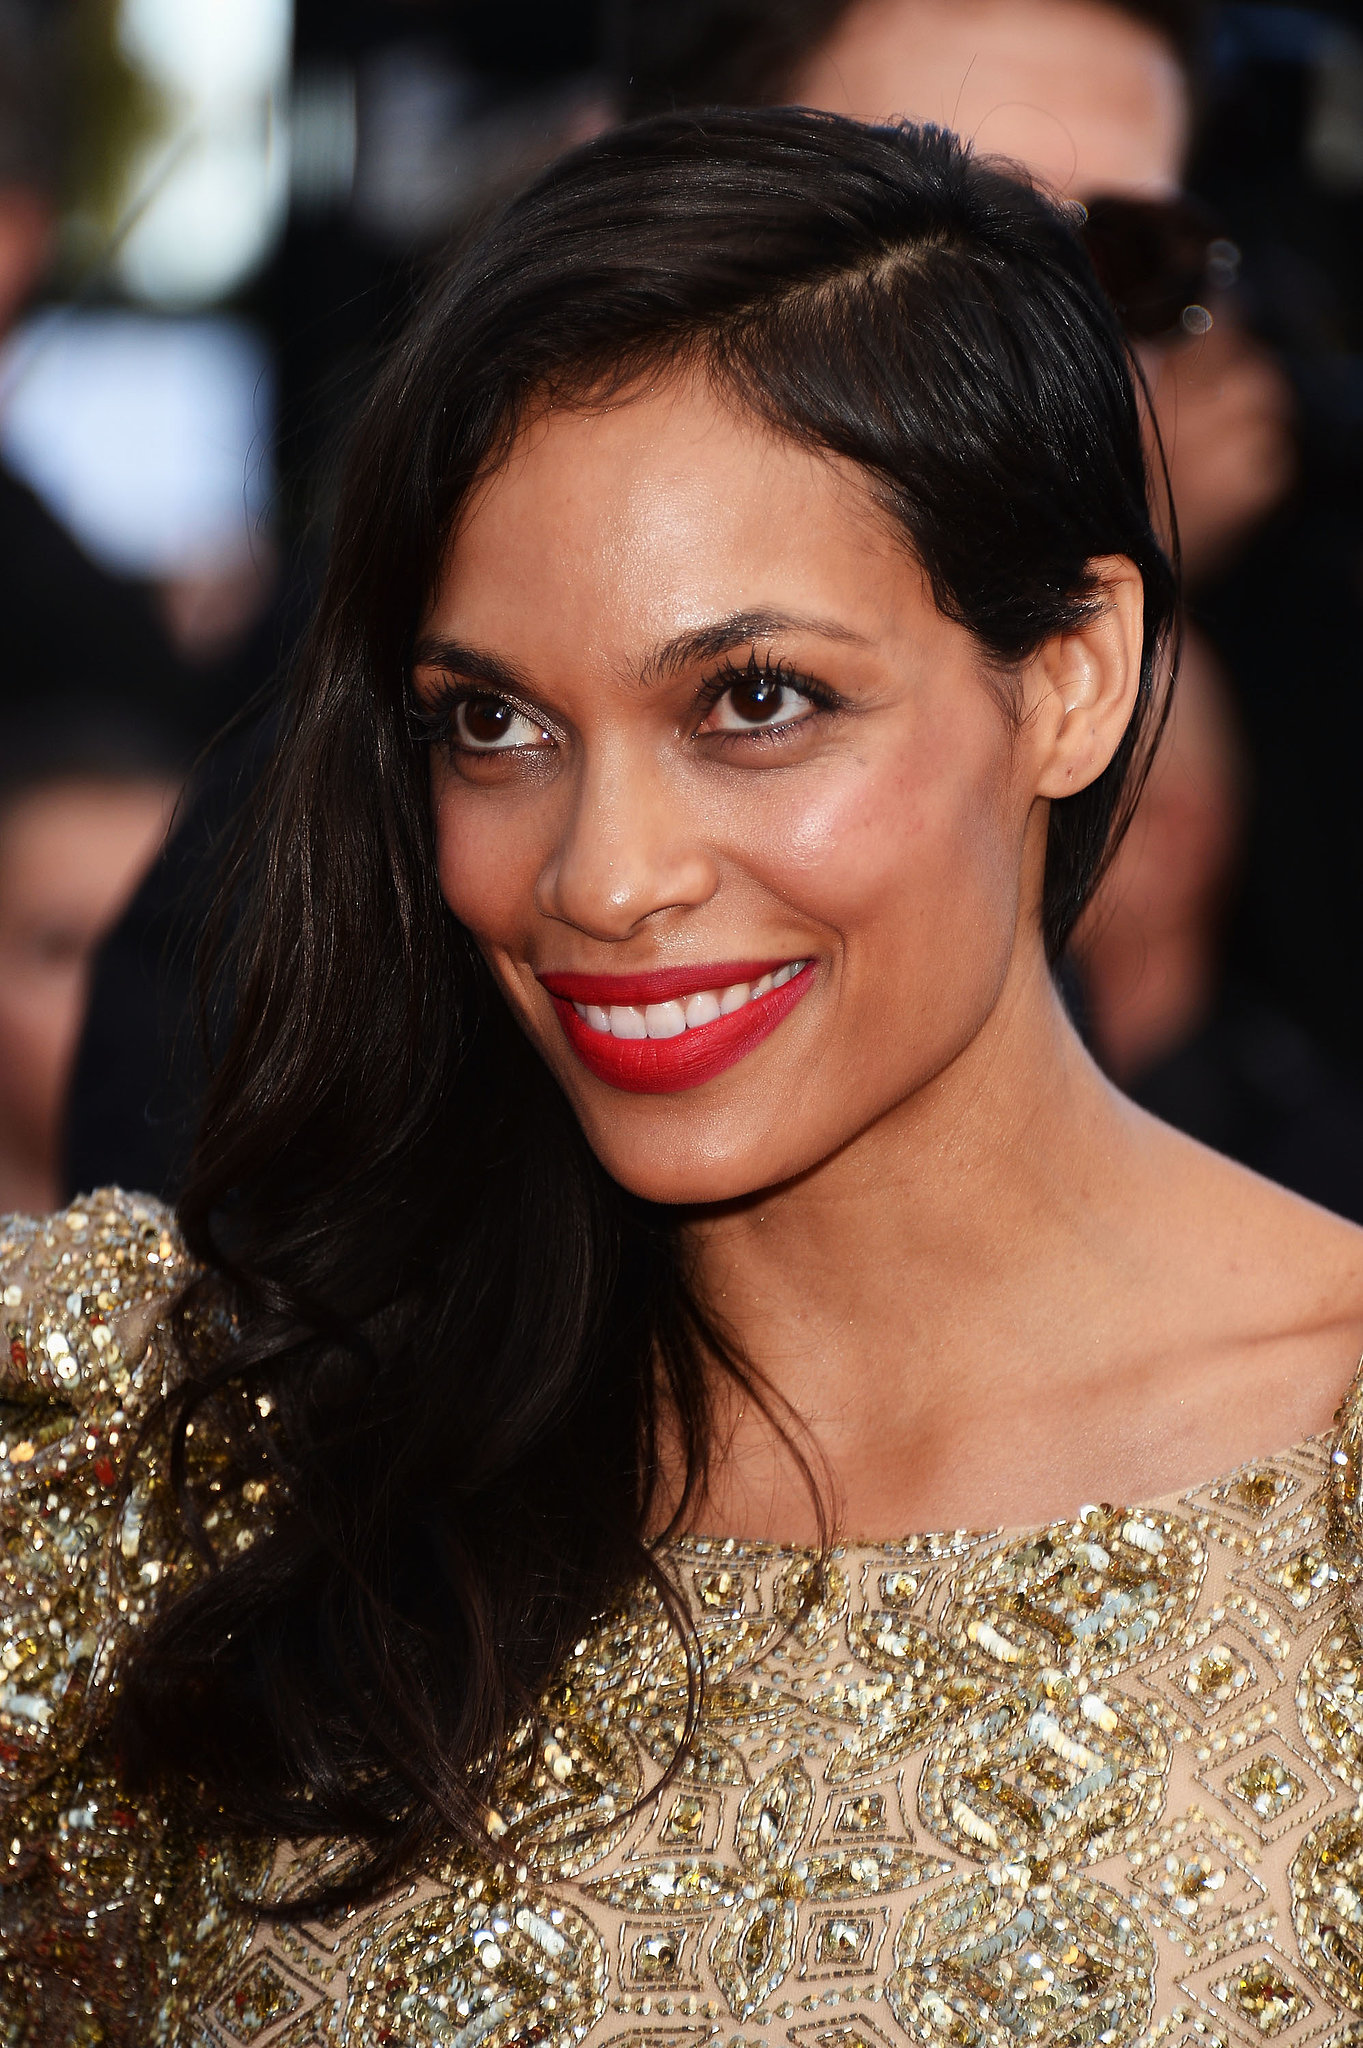 Rosario Dawson's buzzed sides are a touch longer than the norm, and are easily hidden with an opposite side part.